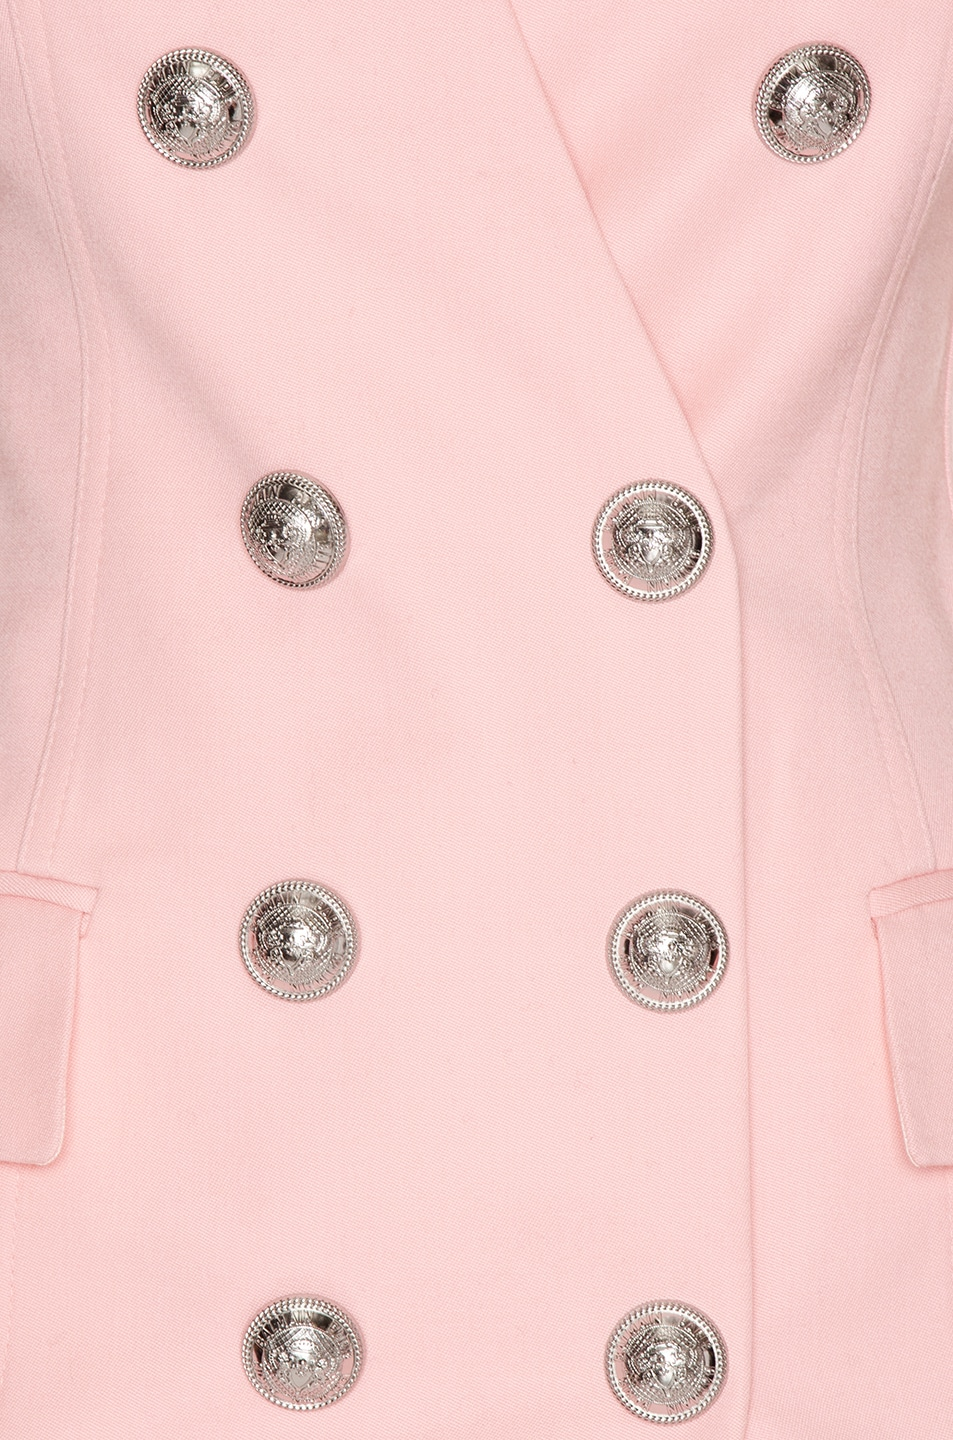 Image 5 of BALMAIN Sleeveless Button Mini Dress in Rose Pale